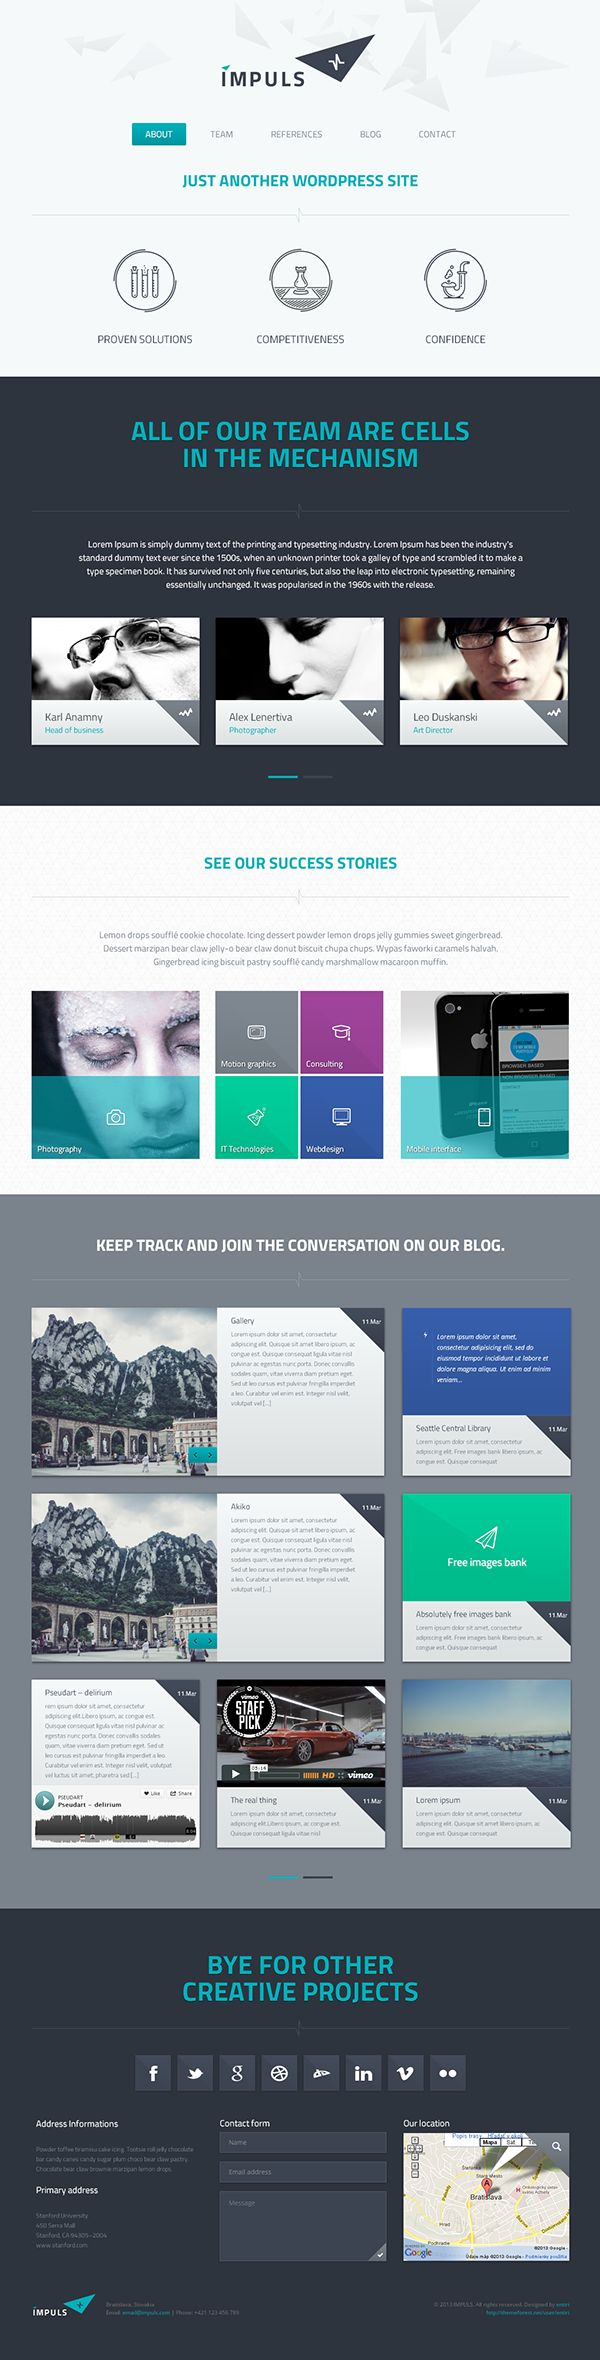 IMPULS is a responsive HTML template based on Twitter Bootstrap framework. This template has been designed as a single page graphics solution suitable for business, non-profit organizations, website portfolio or product single sites with the support of re…